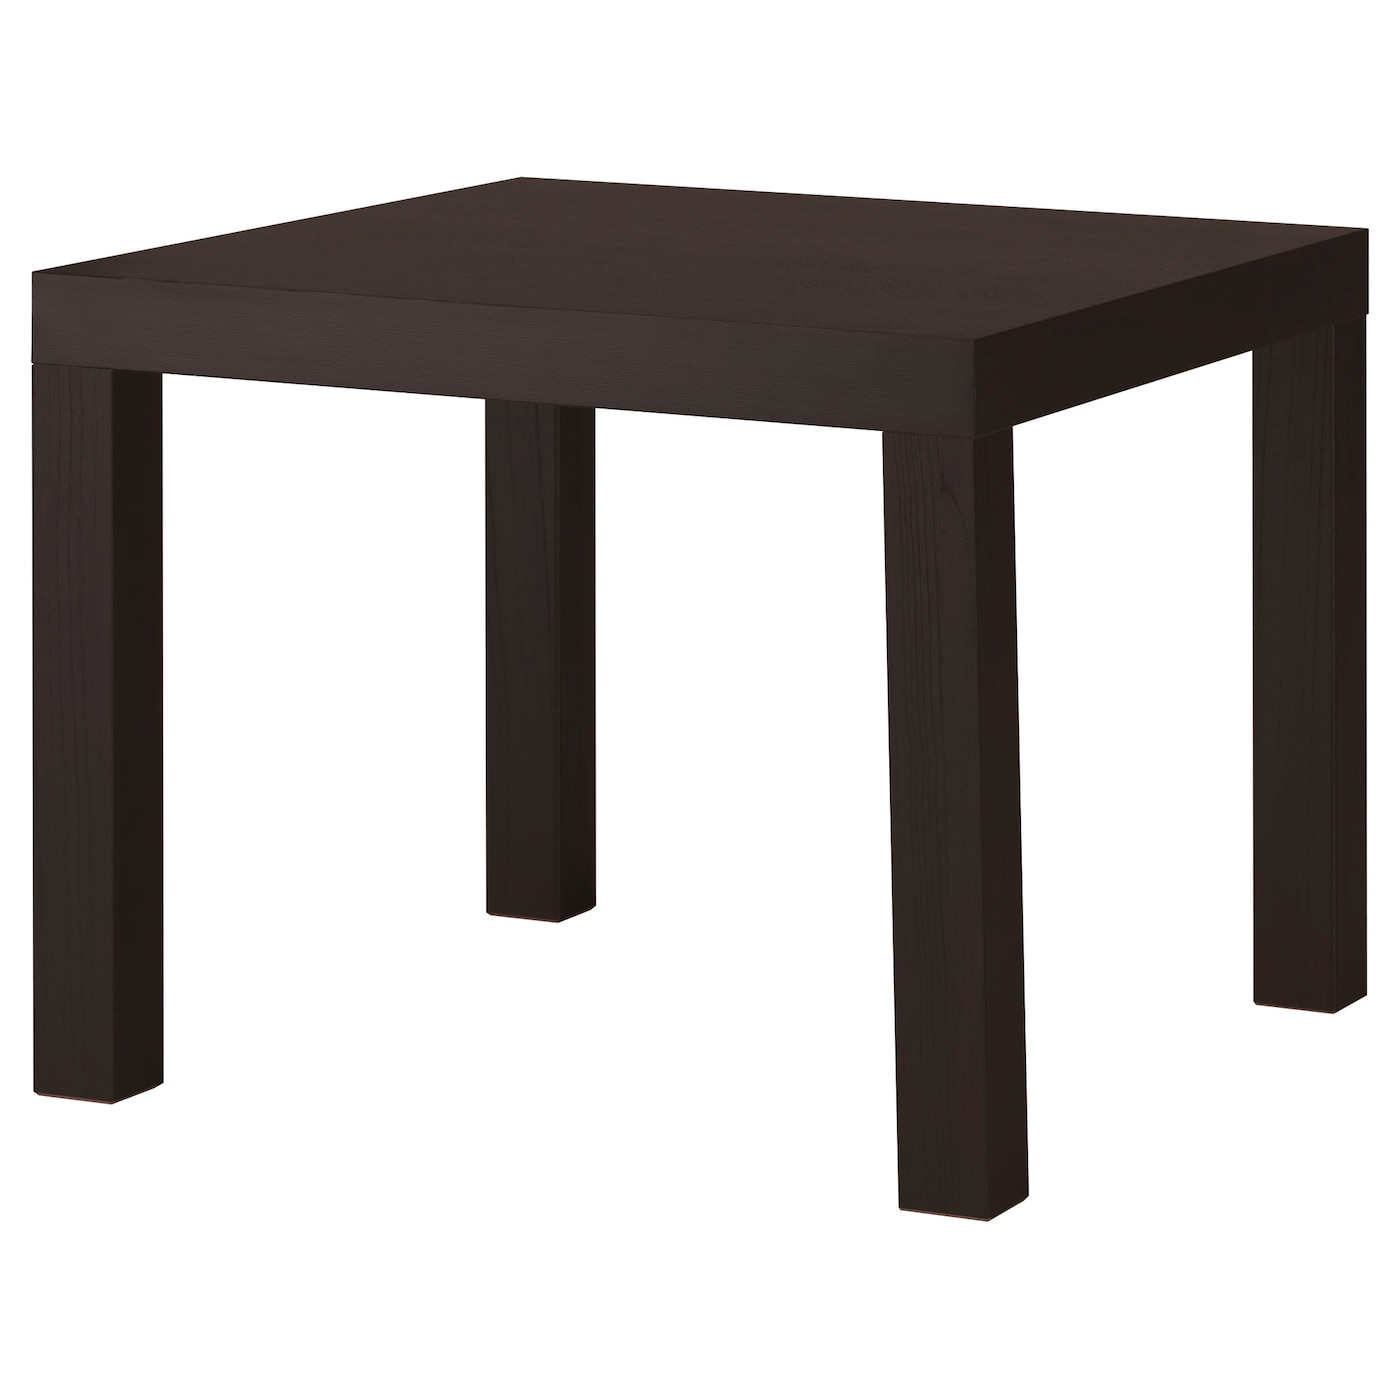 Lack table d 39 appoint brun noir 55x55 cm ikea for Ikea besta table d appoint